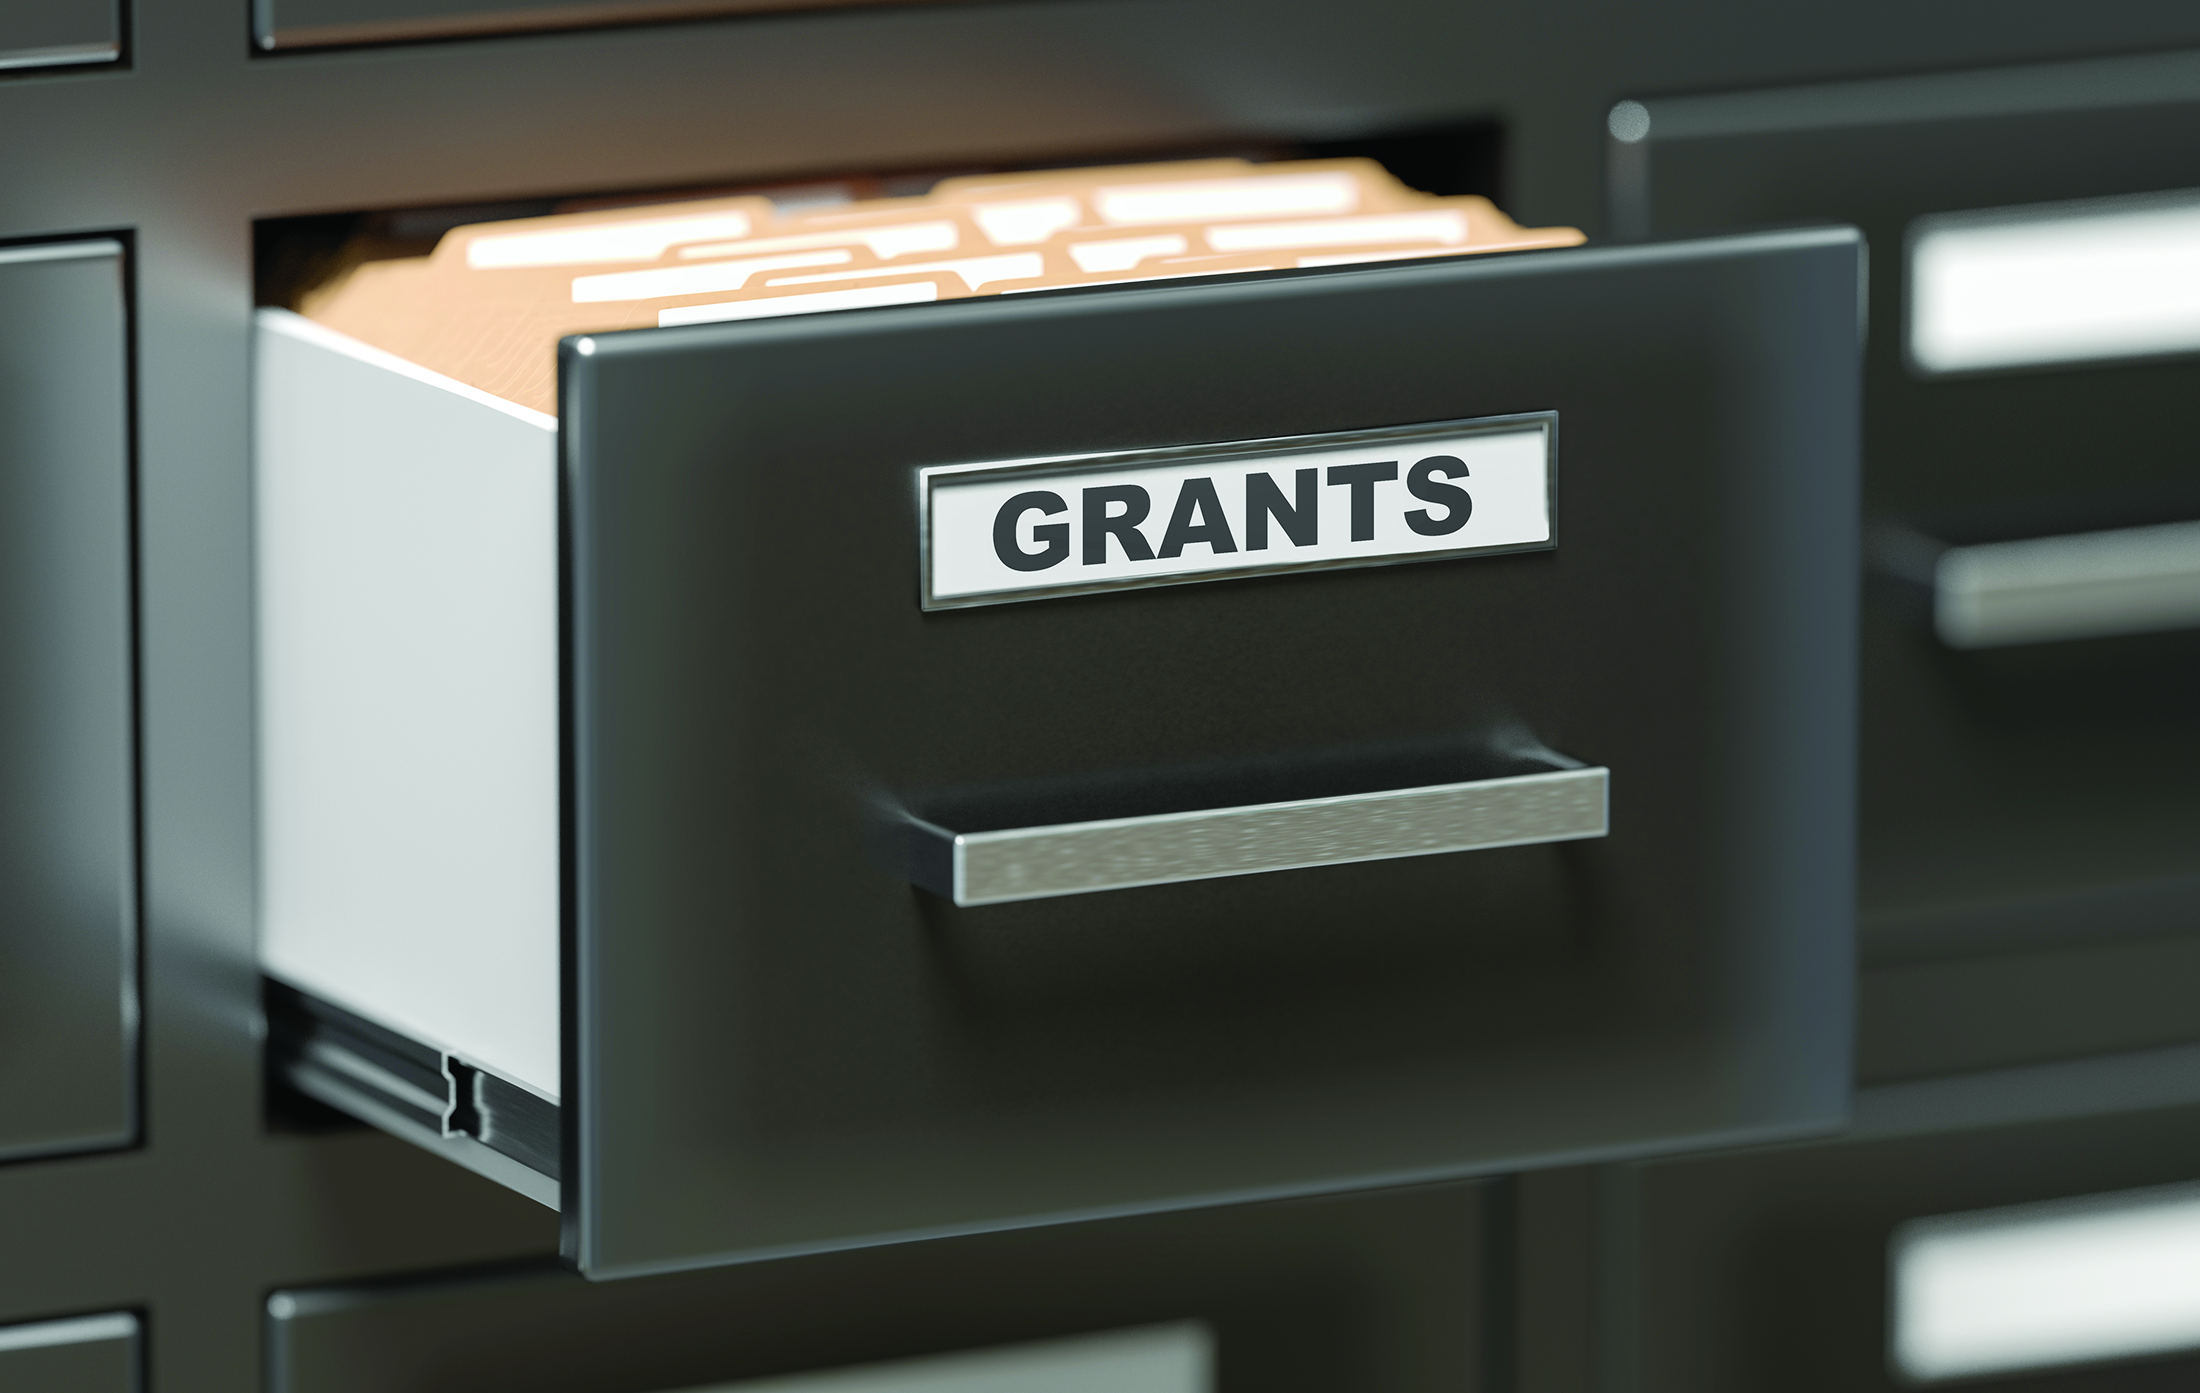 5 Keys to Securing Grant Funding